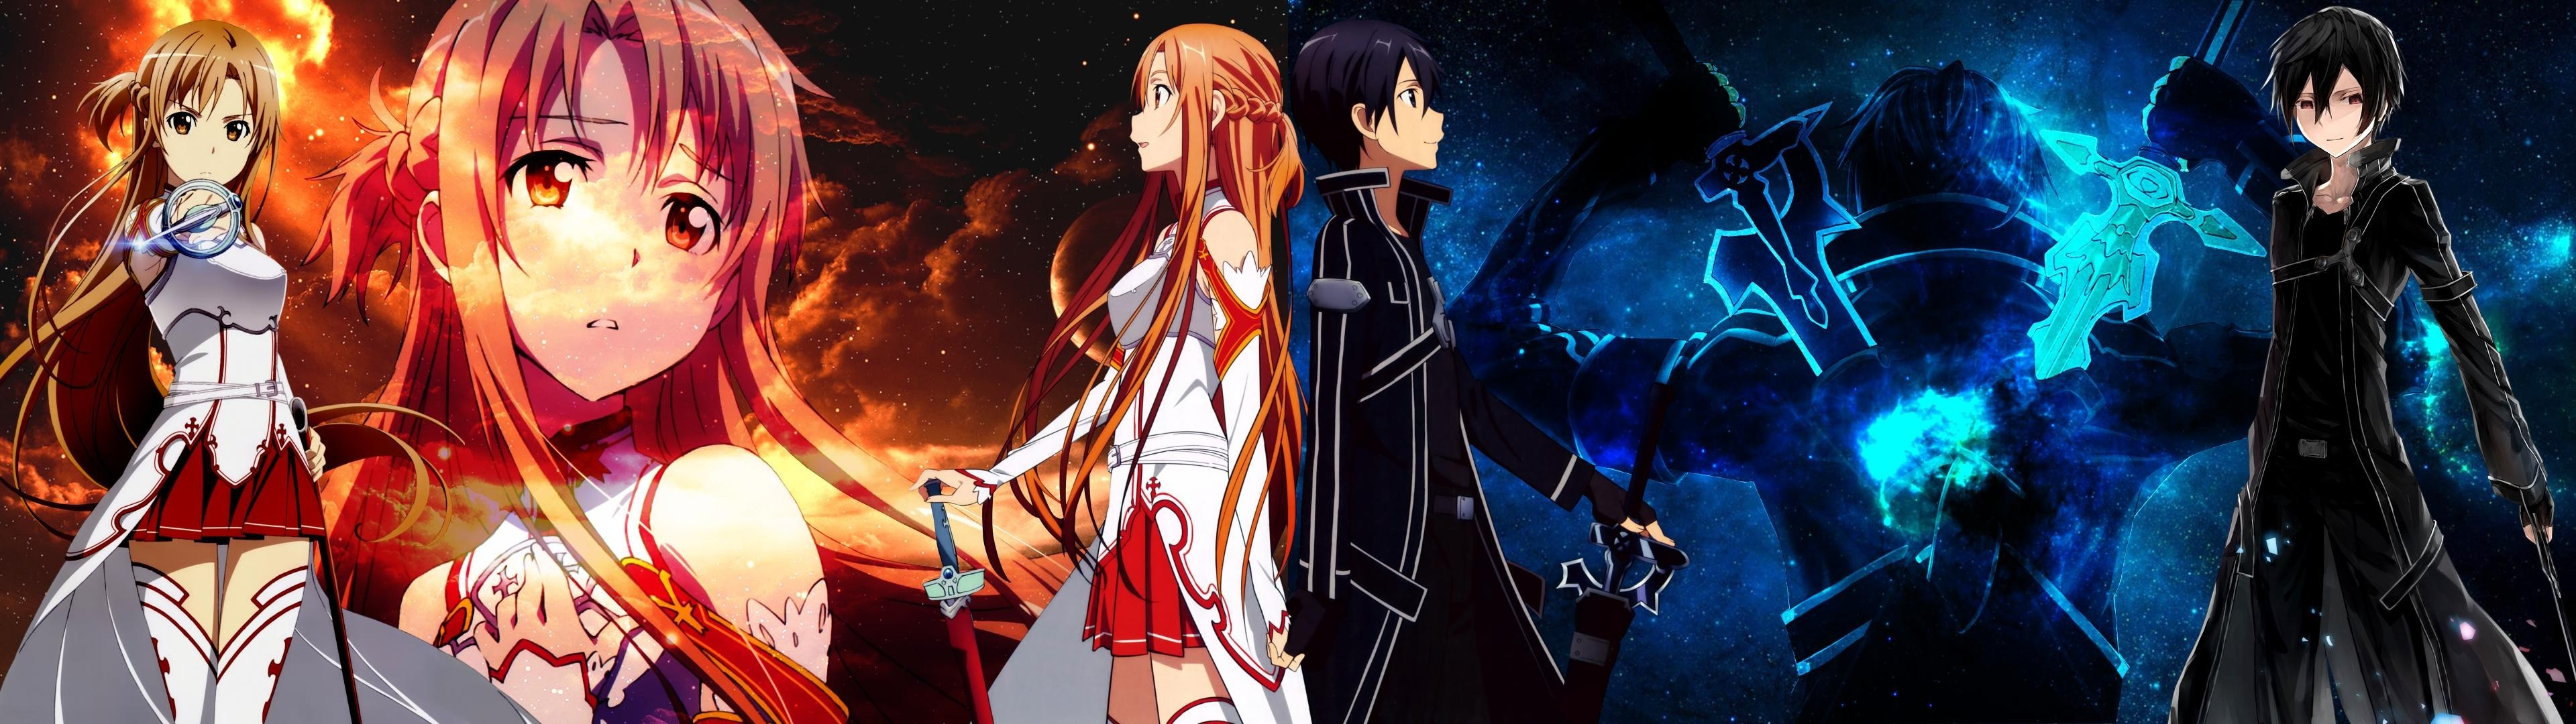 Sao Swords Wallpaper Posted By Ryan Johnson